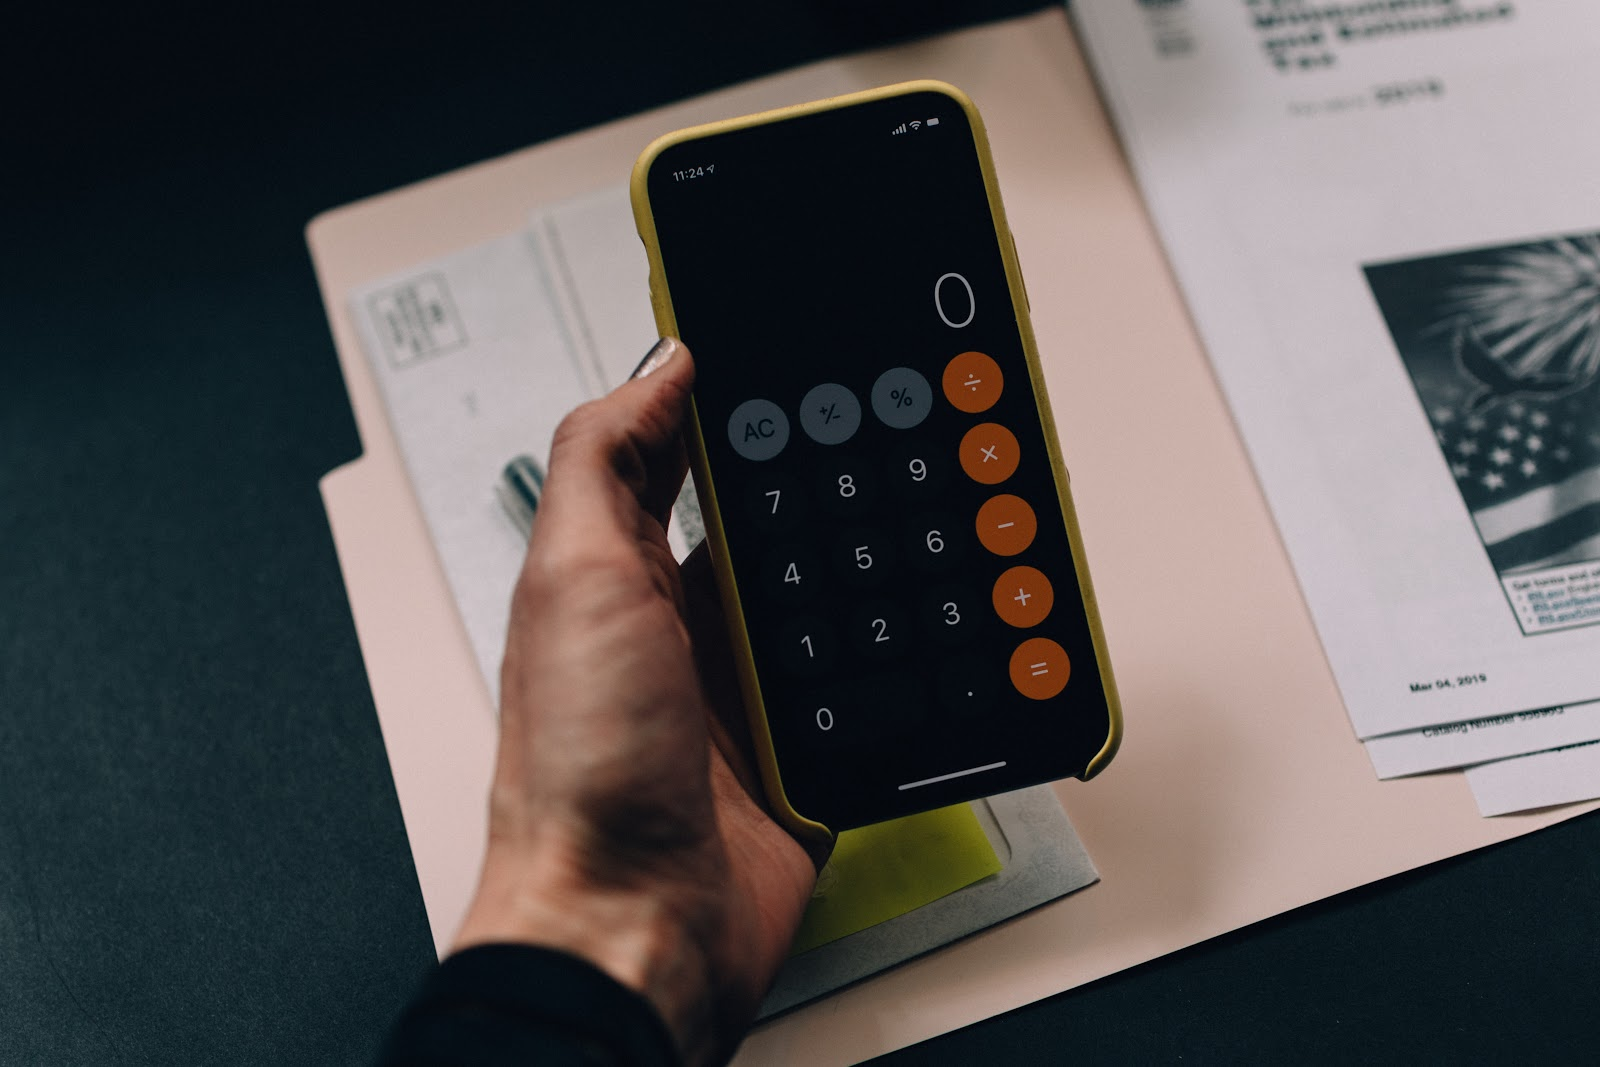 A person looking at the mobile calculator app